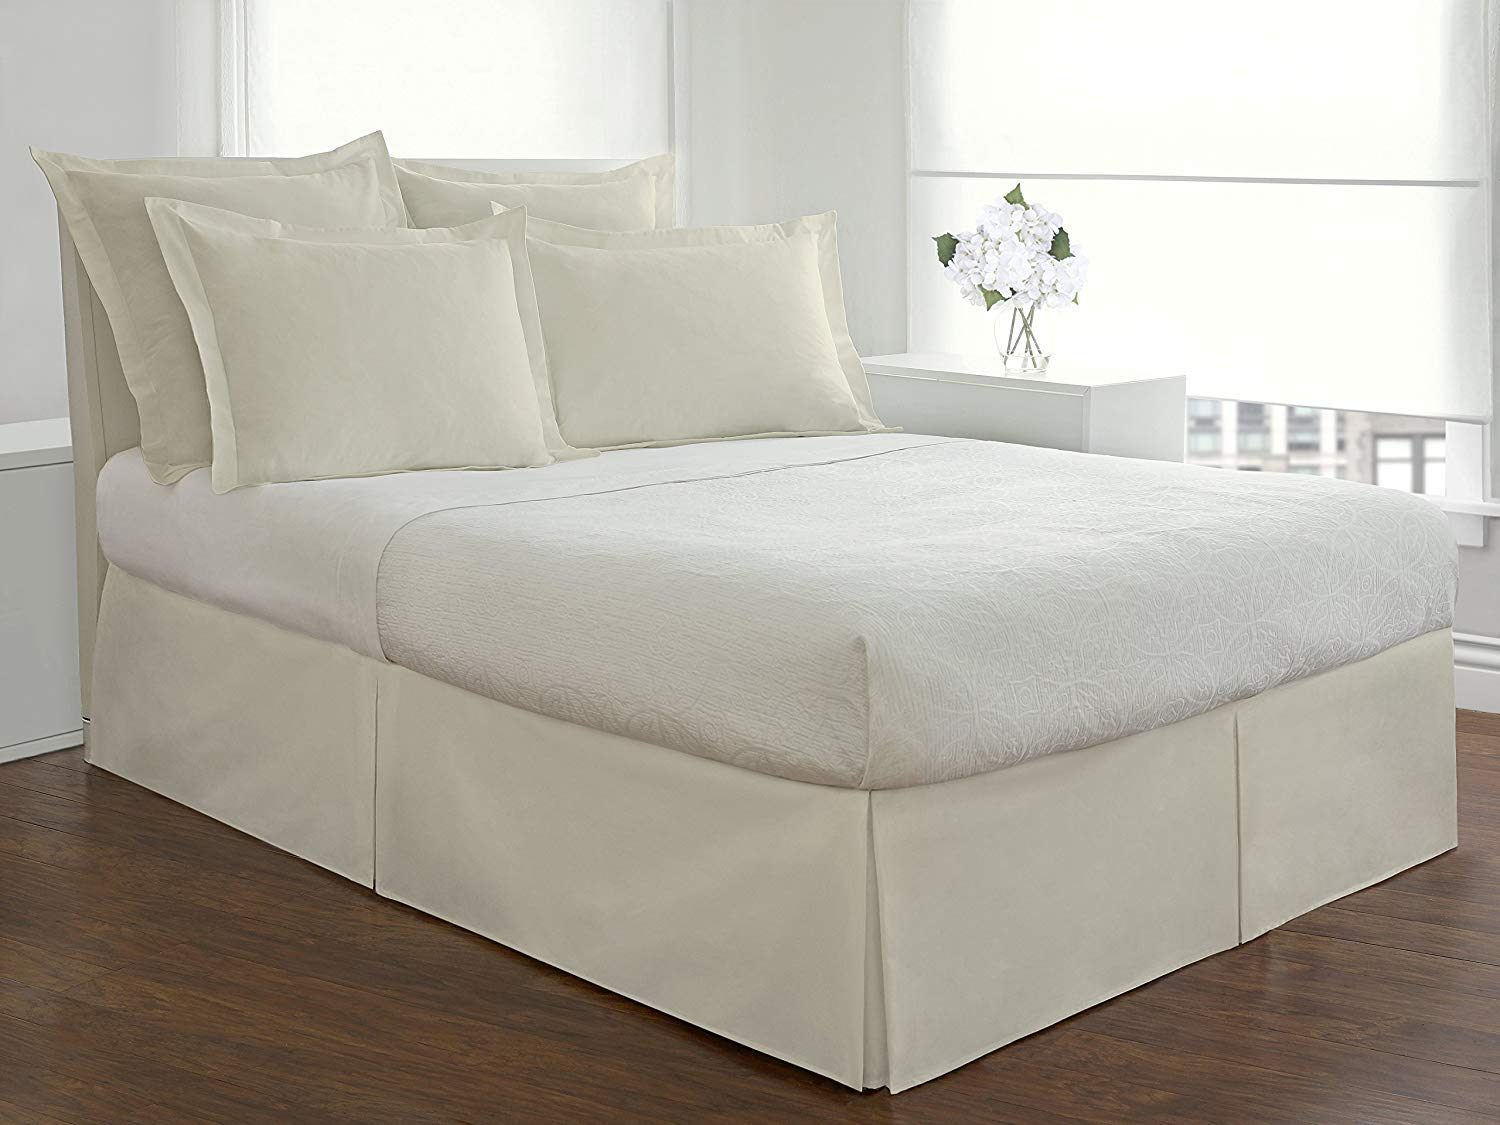 Idea Linen Ultra Soft Bed Skirt Premium Cal-King Size Ivory with 18 Inch Drop 300 Thread Count Hotel Qualit Quadruple Pleated Hypoallergenic Wrinkle and Fade Resistant